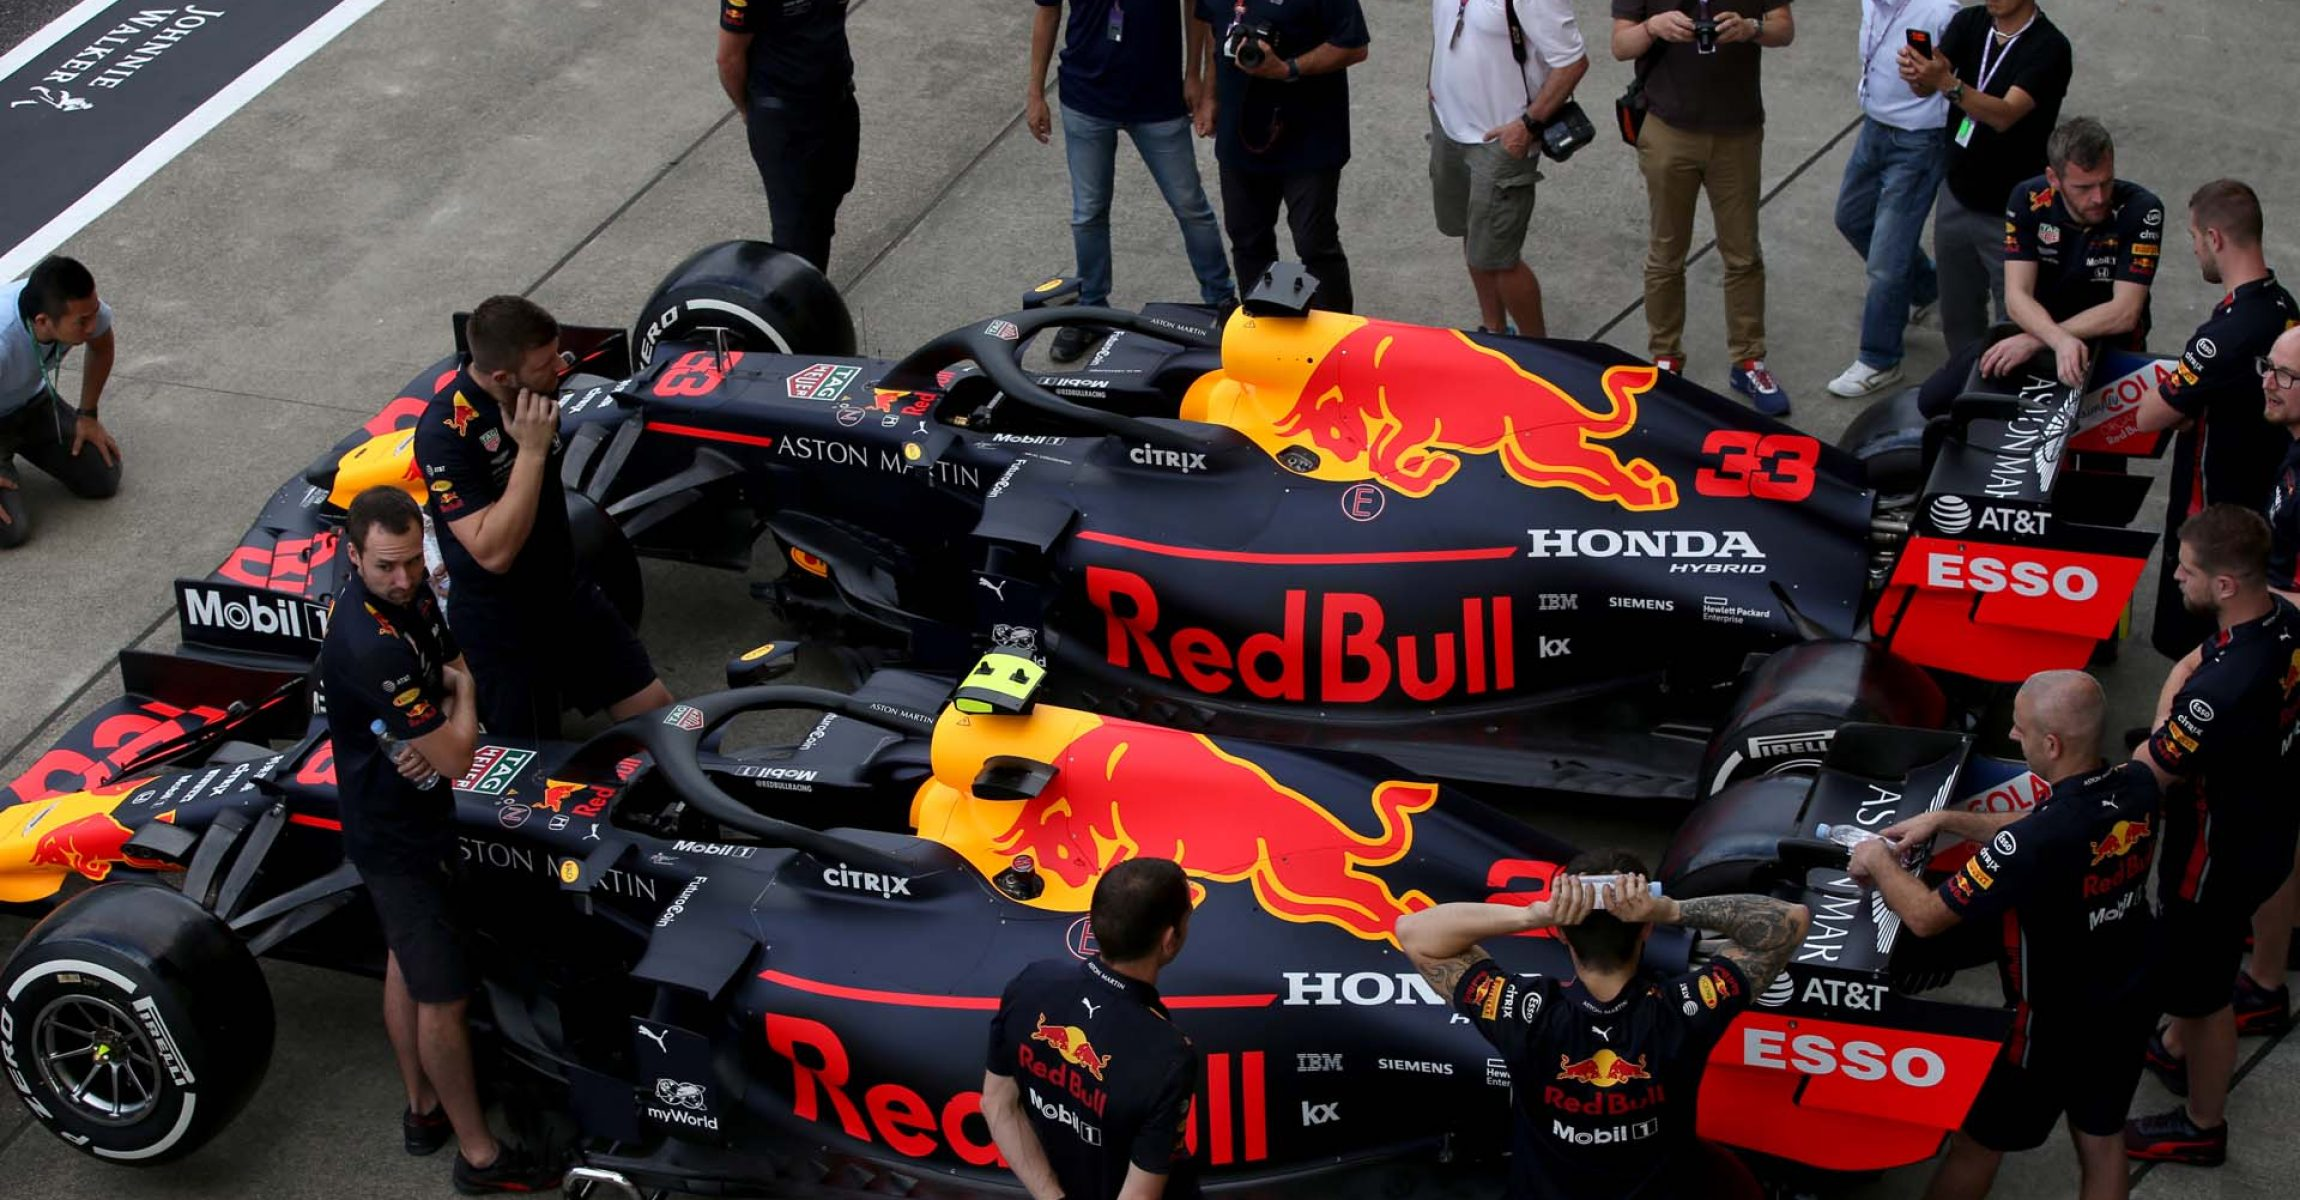 SUZUKA, JAPAN - OCTOBER 10: The cars of Max Verstappen of Netherlands and Red Bull Racing and Alexander Albon of Thailand and Red Bull Racing are seen parked next to each other in the Pitlane during previews ahead of the F1 Grand Prix of Japan at Suzuka Circuit on October 10, 2019 in Suzuka, Japan. (Photo by Charles Coates/Getty Images) // Getty Images / Red Bull Content Pool  // AP-21U1PPJPD2111 // Usage for editorial use only //